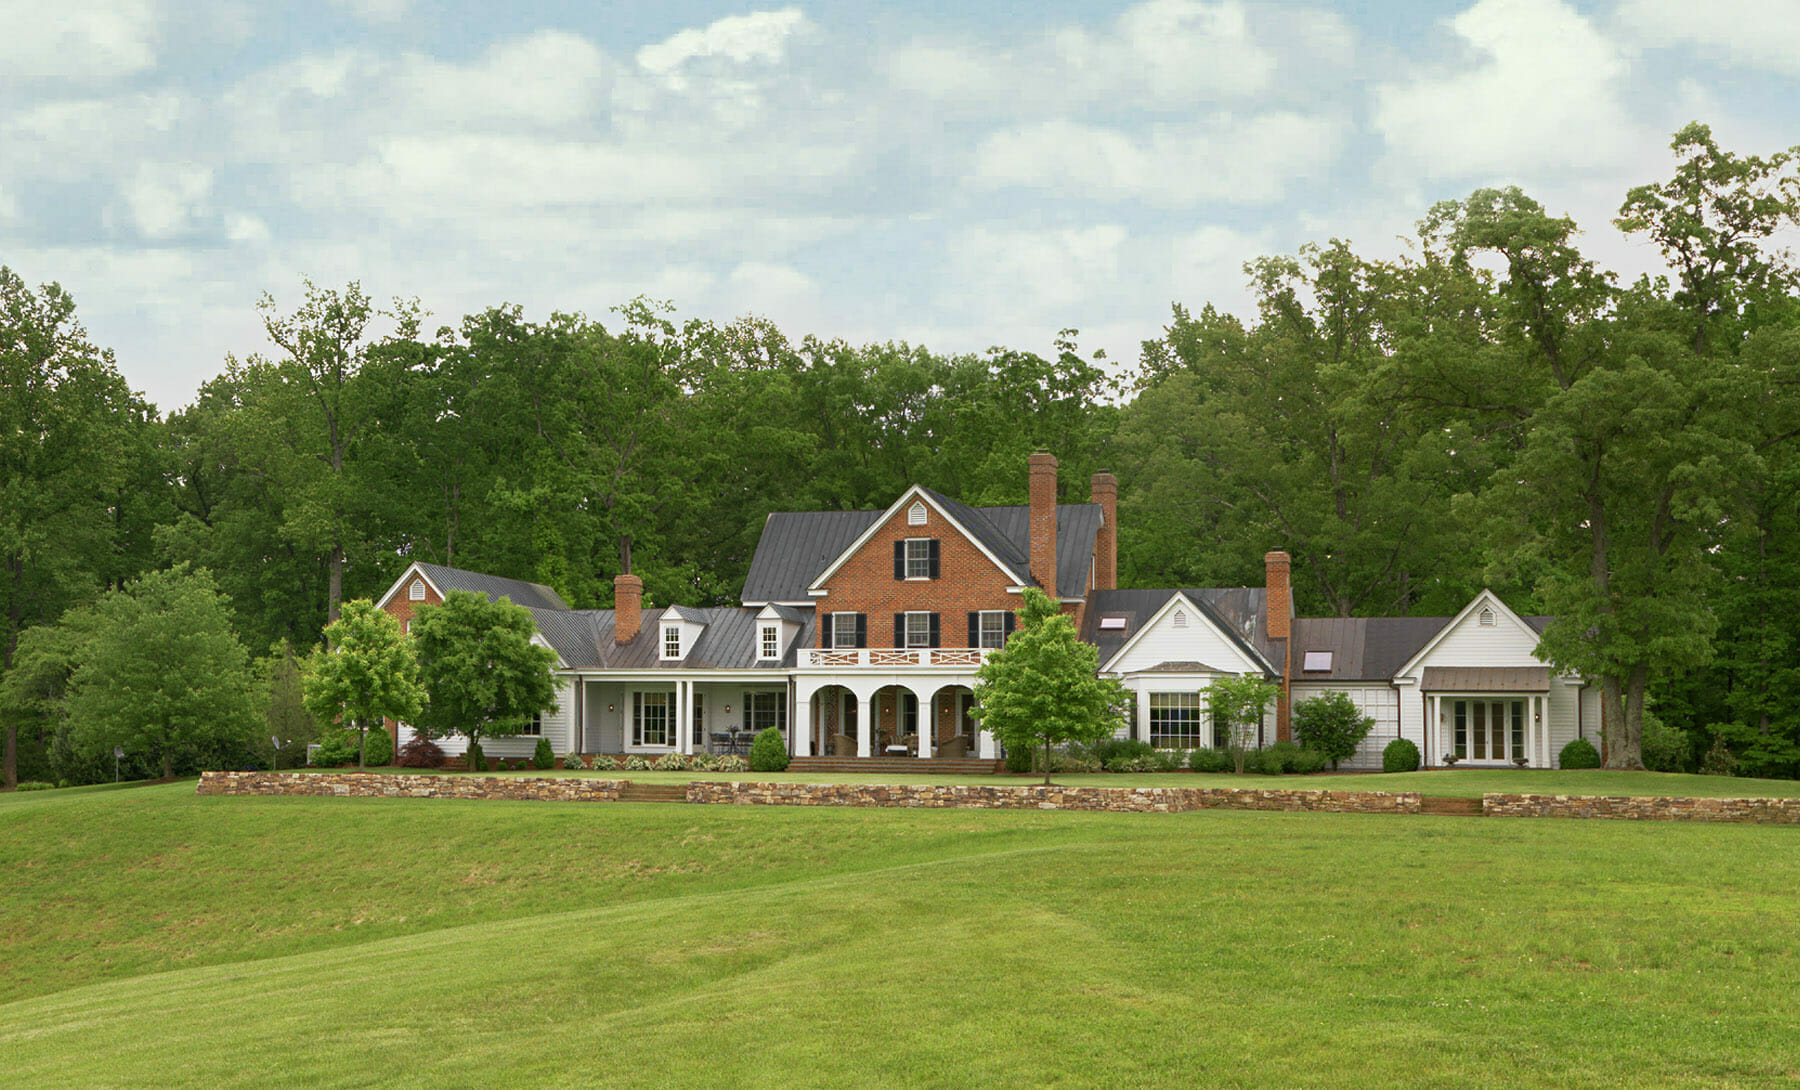 Estate home preservation in Charlottesville by GME builders